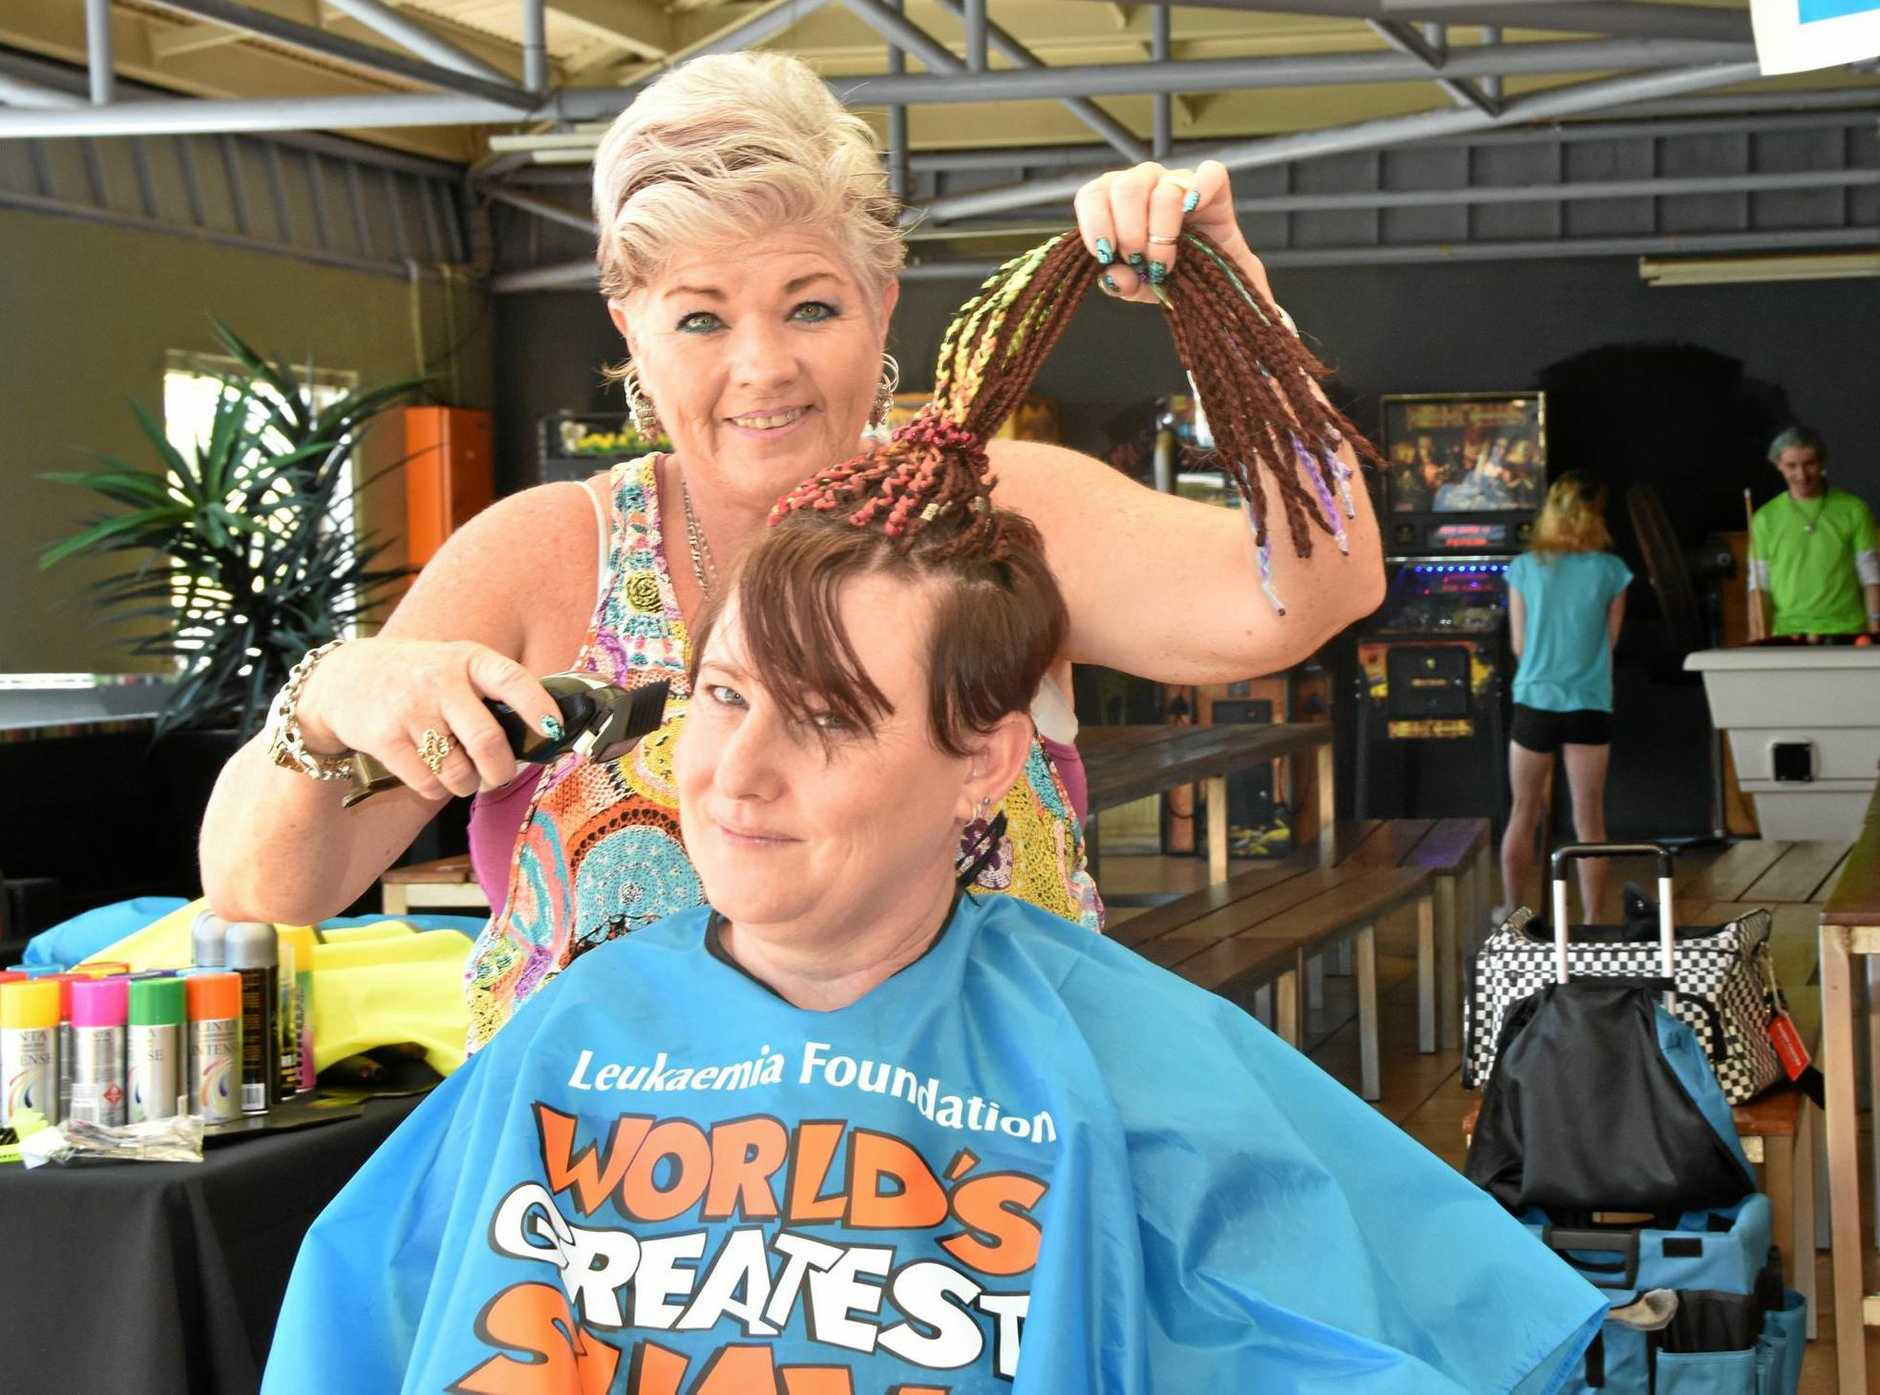 Hair dresser Lauren Powell gives Alicia Armstrong an interesting new cut.